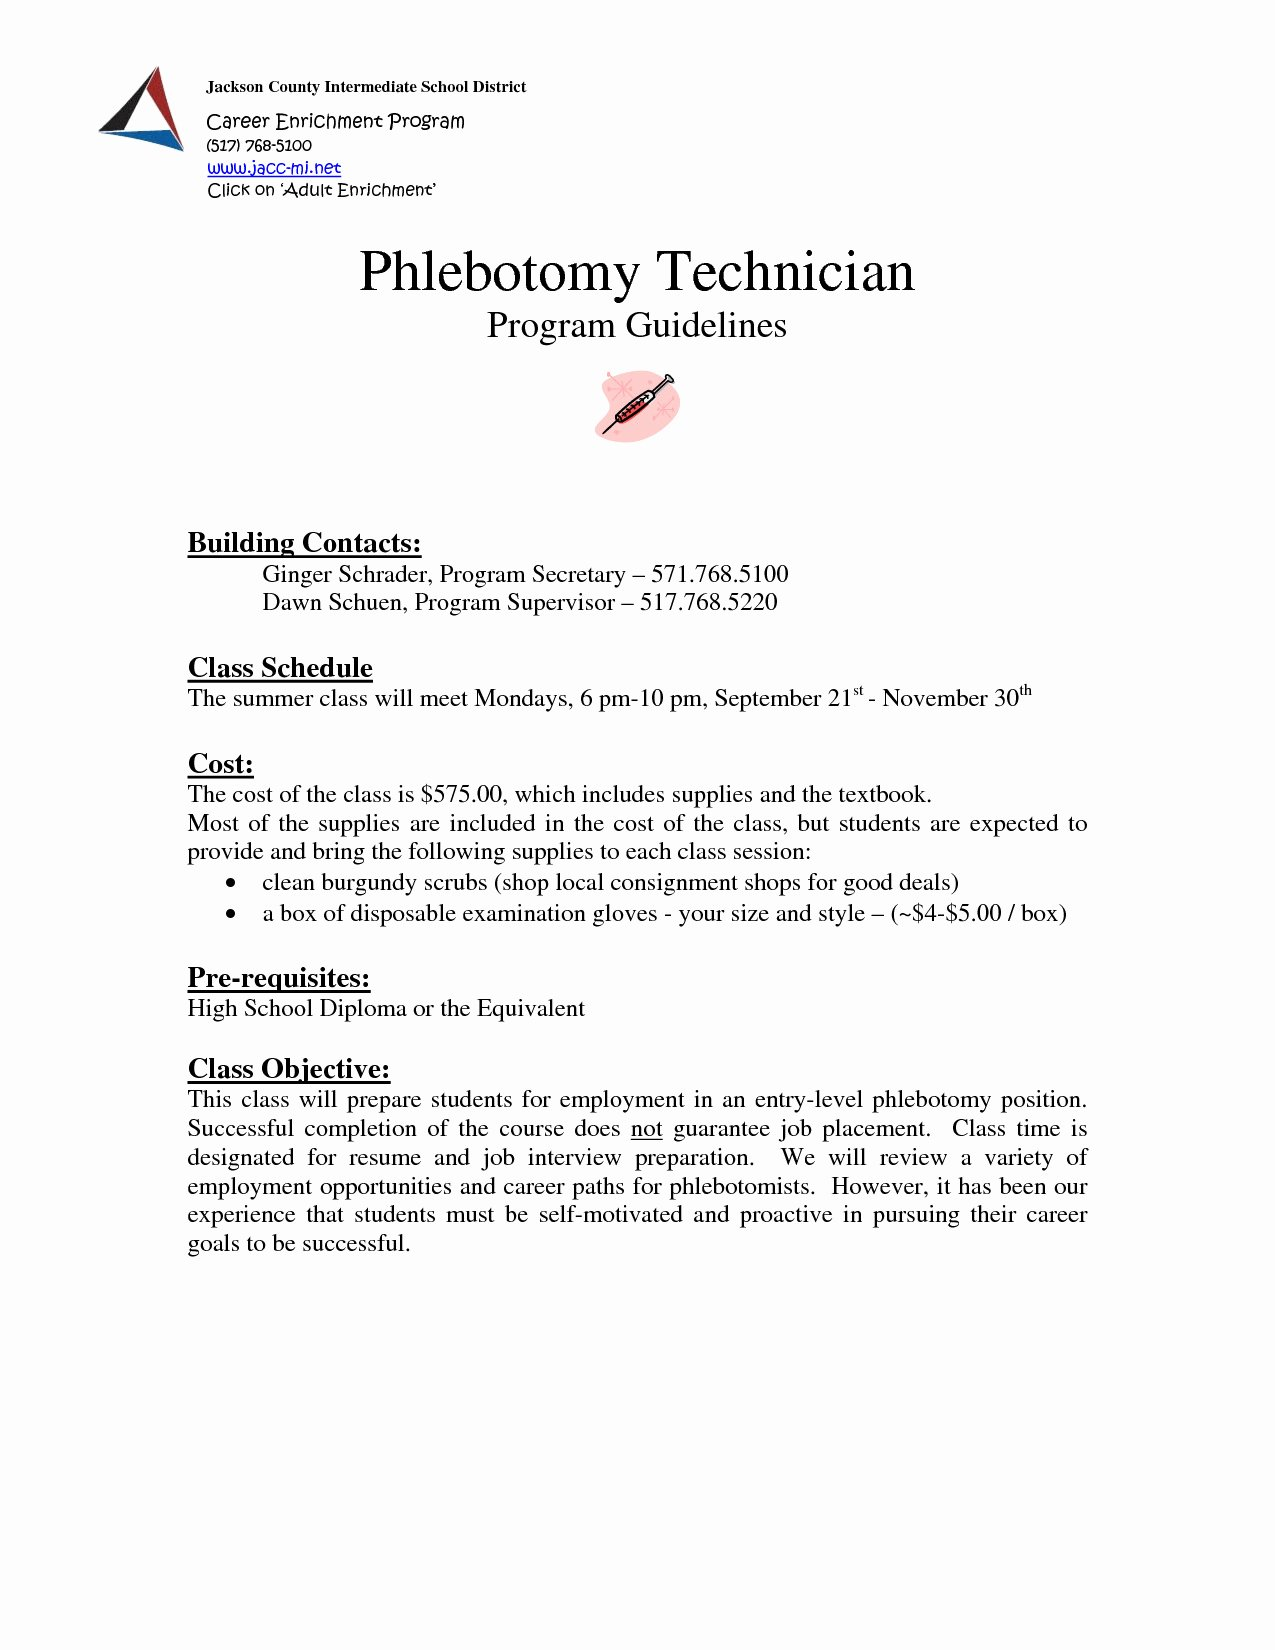 Entry Level Phlebotomist Resume Luxury Phlebotomy Resume Unique Examples Templates Phlebotomist Pre Written Cover Letter Entry Level